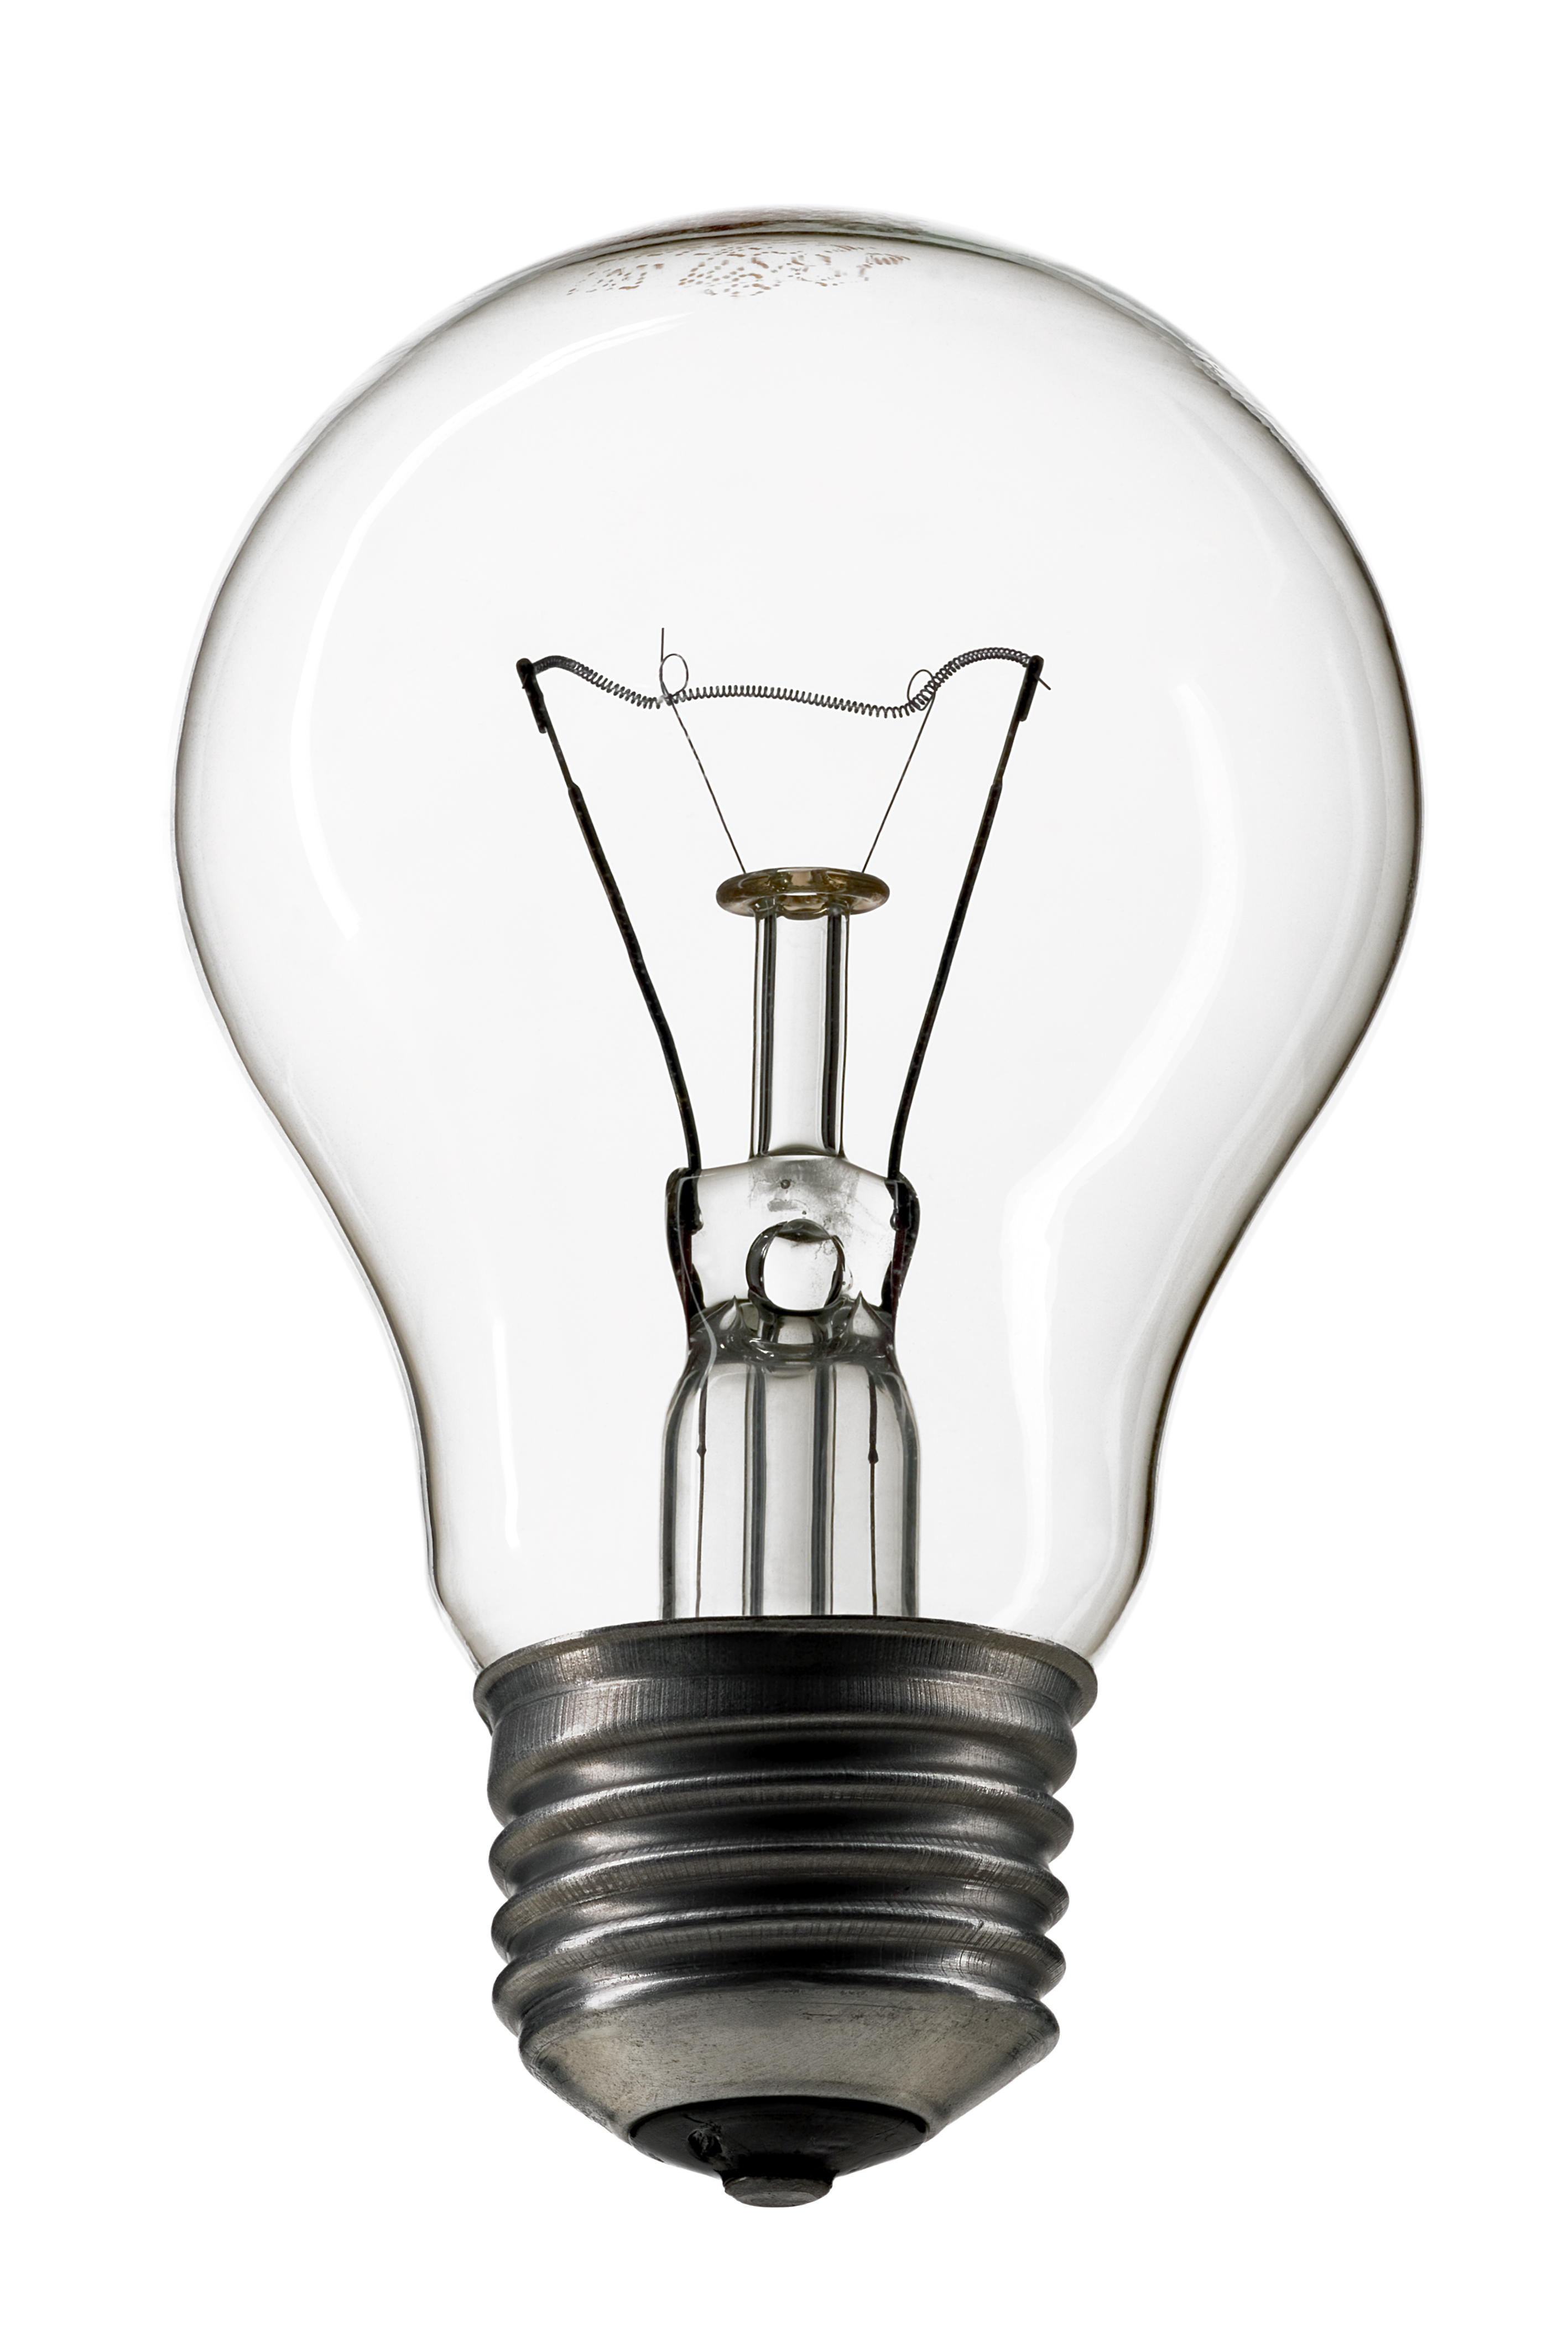 light bulb in our daily life Early people used candles and oil lamps for light crude incandescent lights  were made in the early and middle 19th century but had little use improved  vacuum.